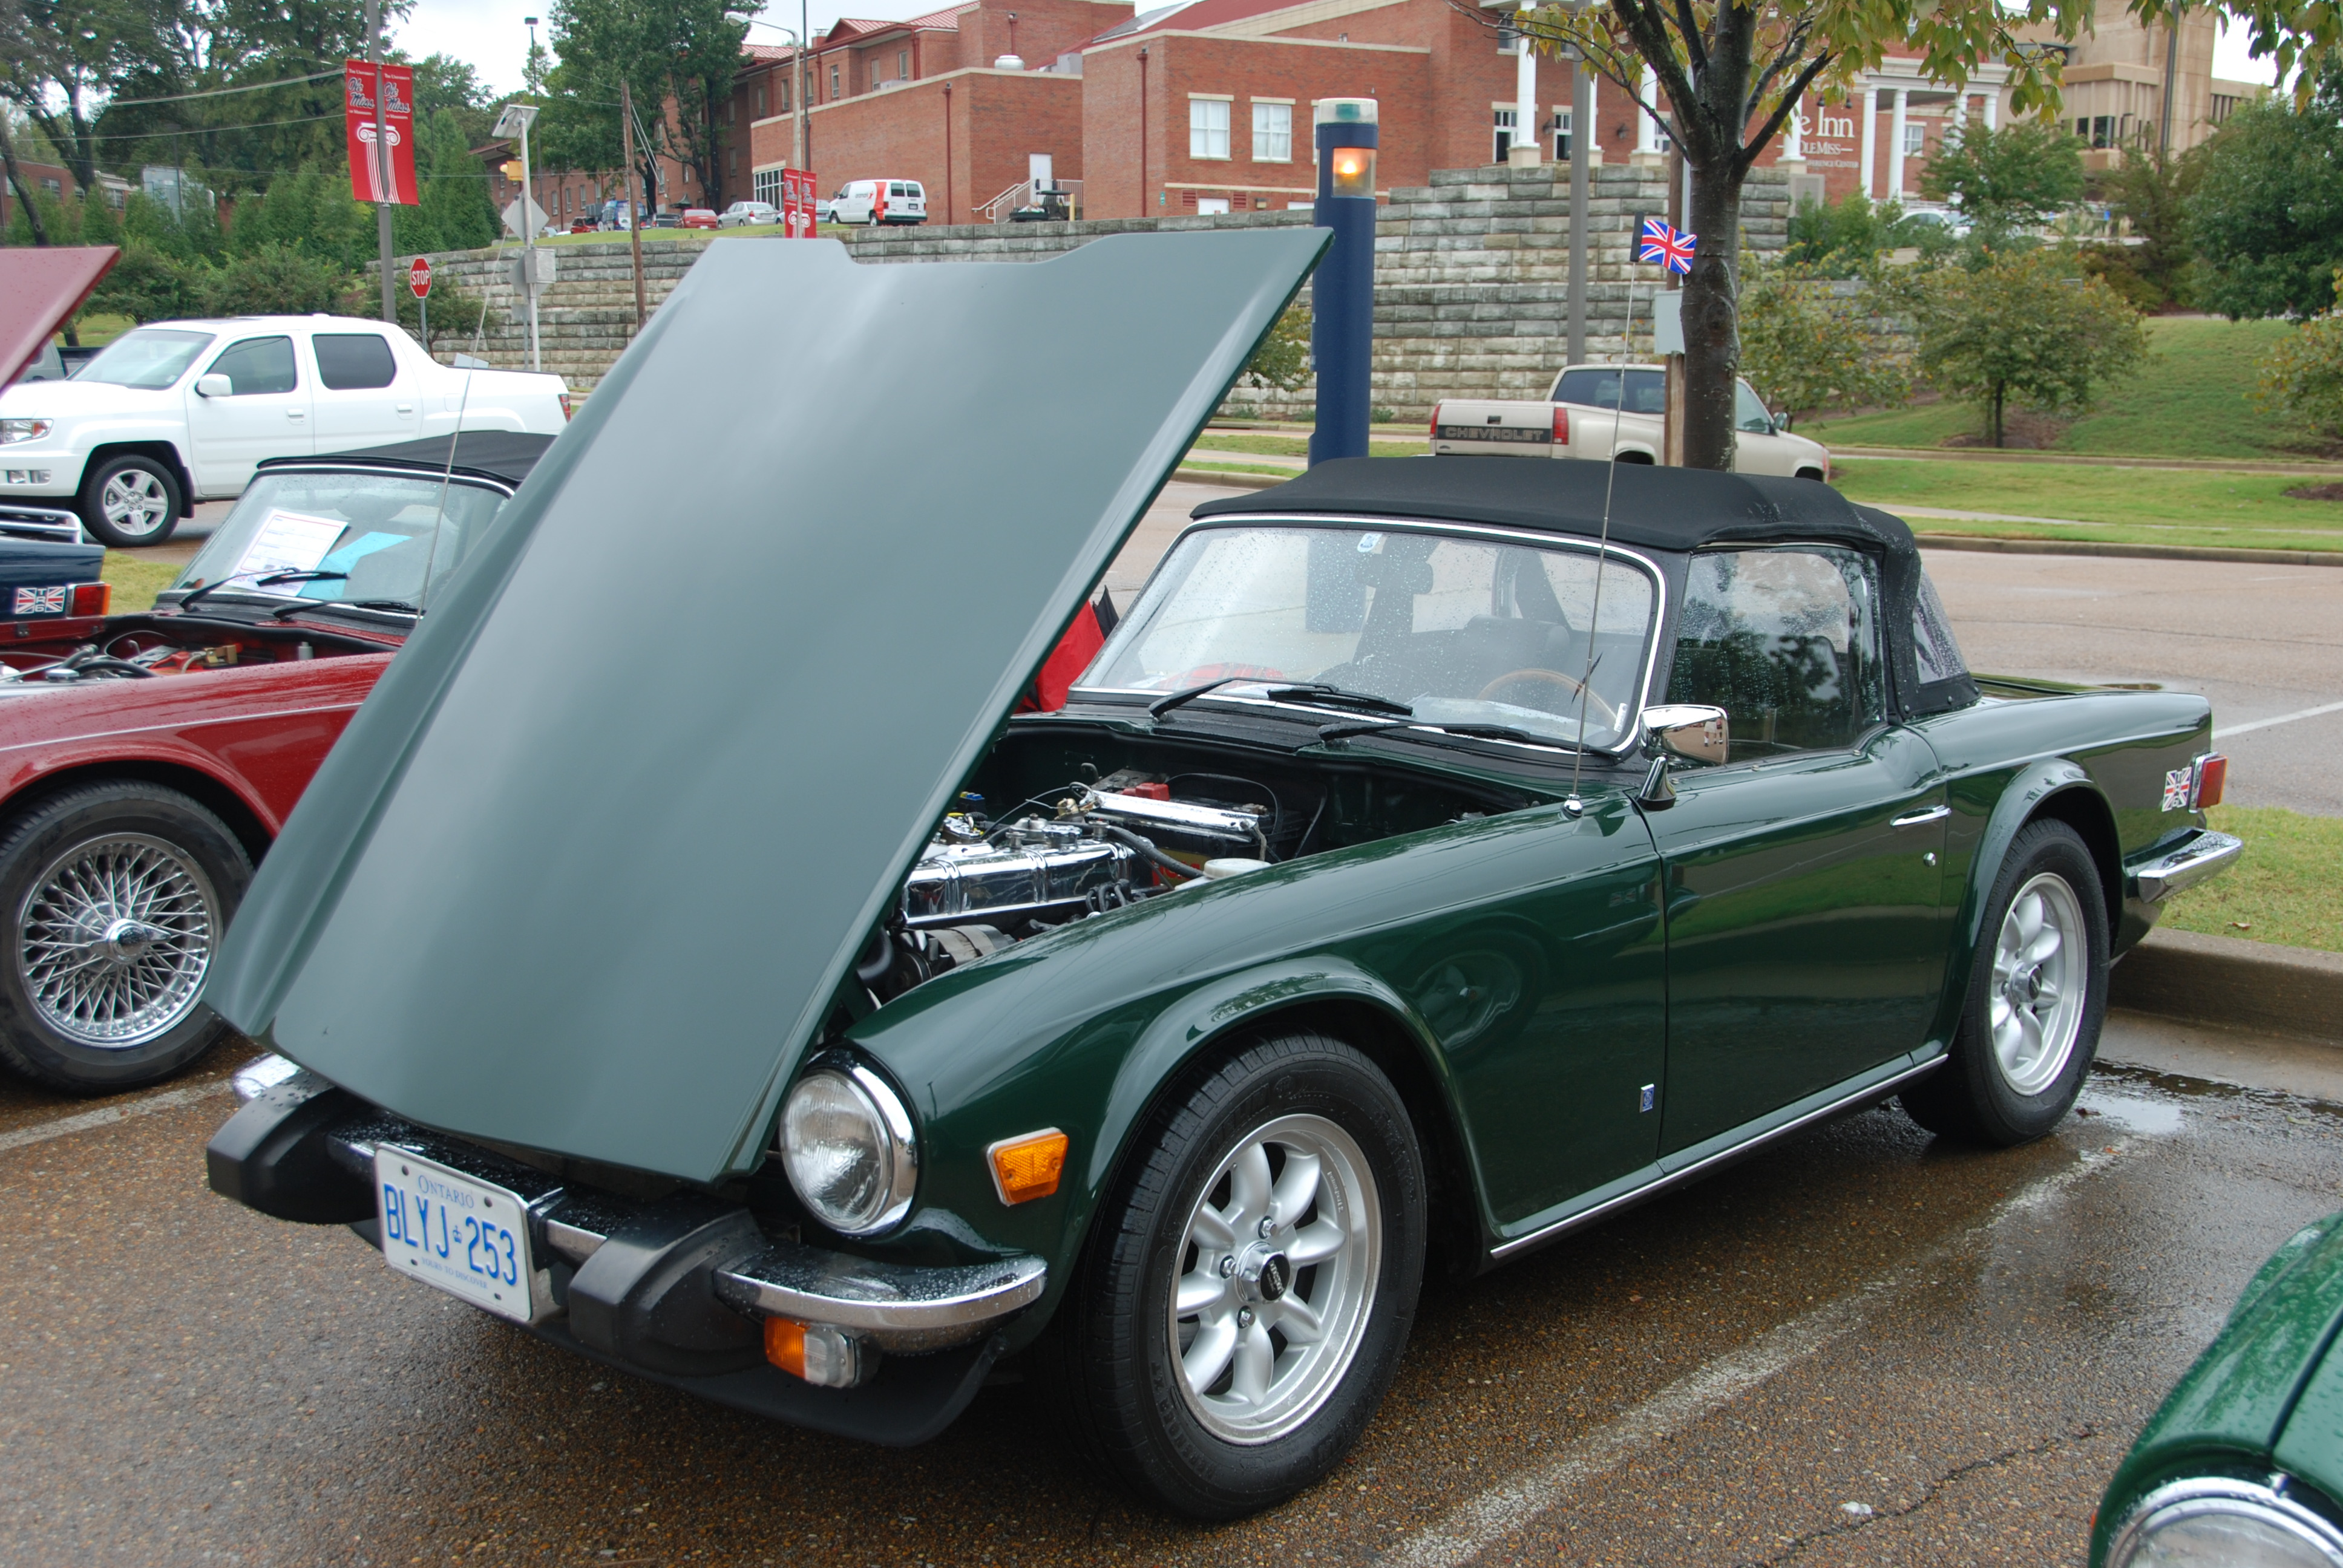 Tr6 Triumph Owners